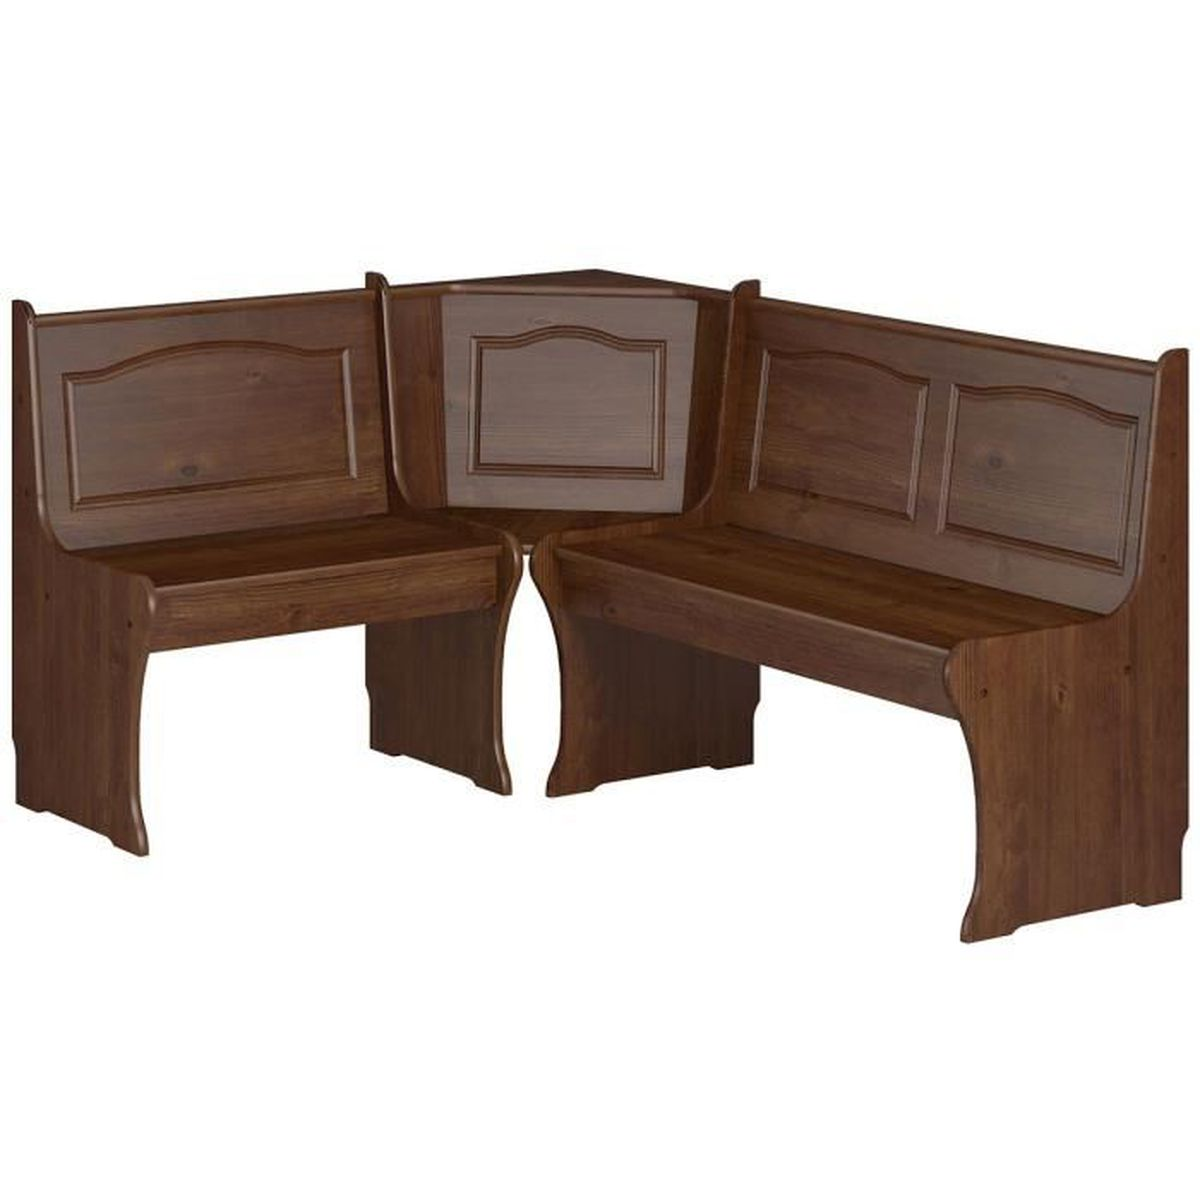 Table Et Banc D Angle girada - banc d'angle chocolat - achat / vente banc - cdiscount